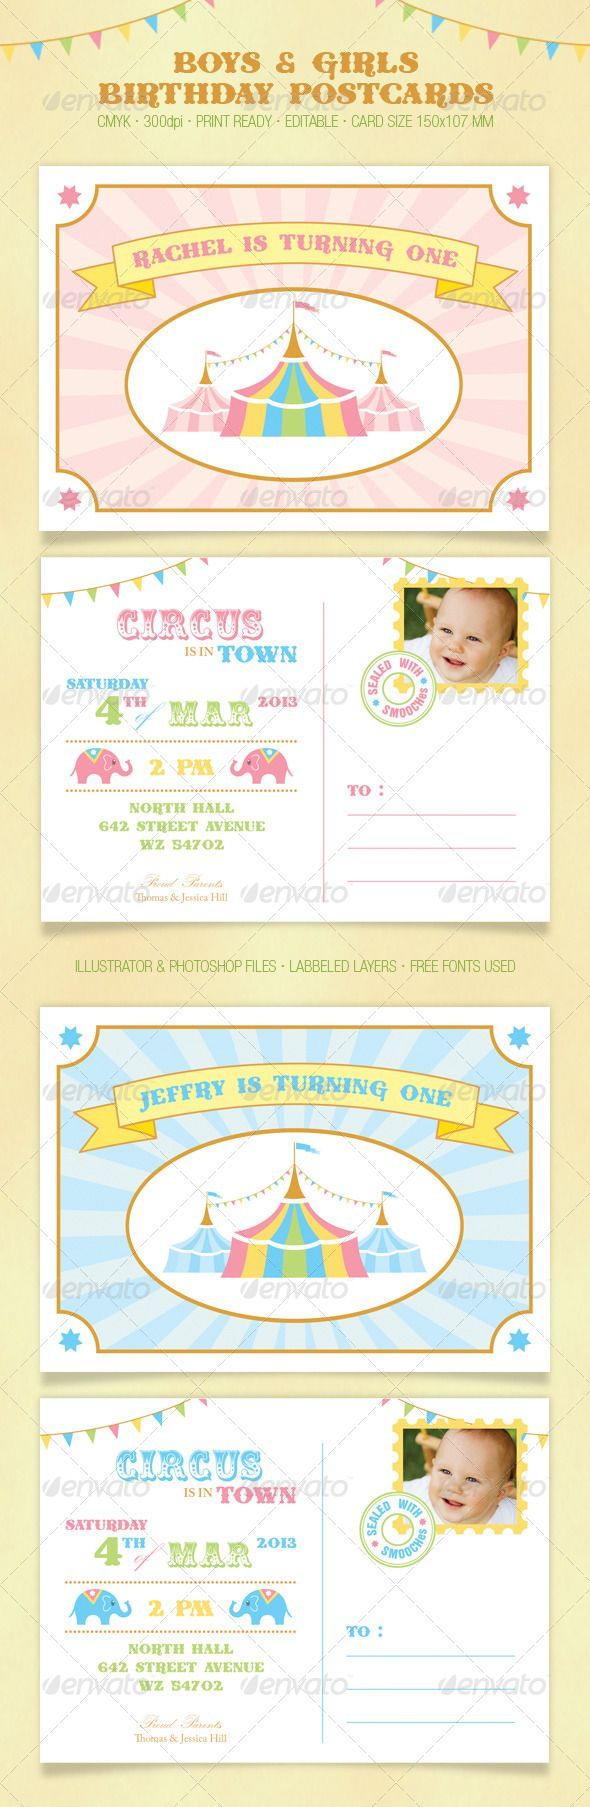 how to create a birthday invitation in photoshop